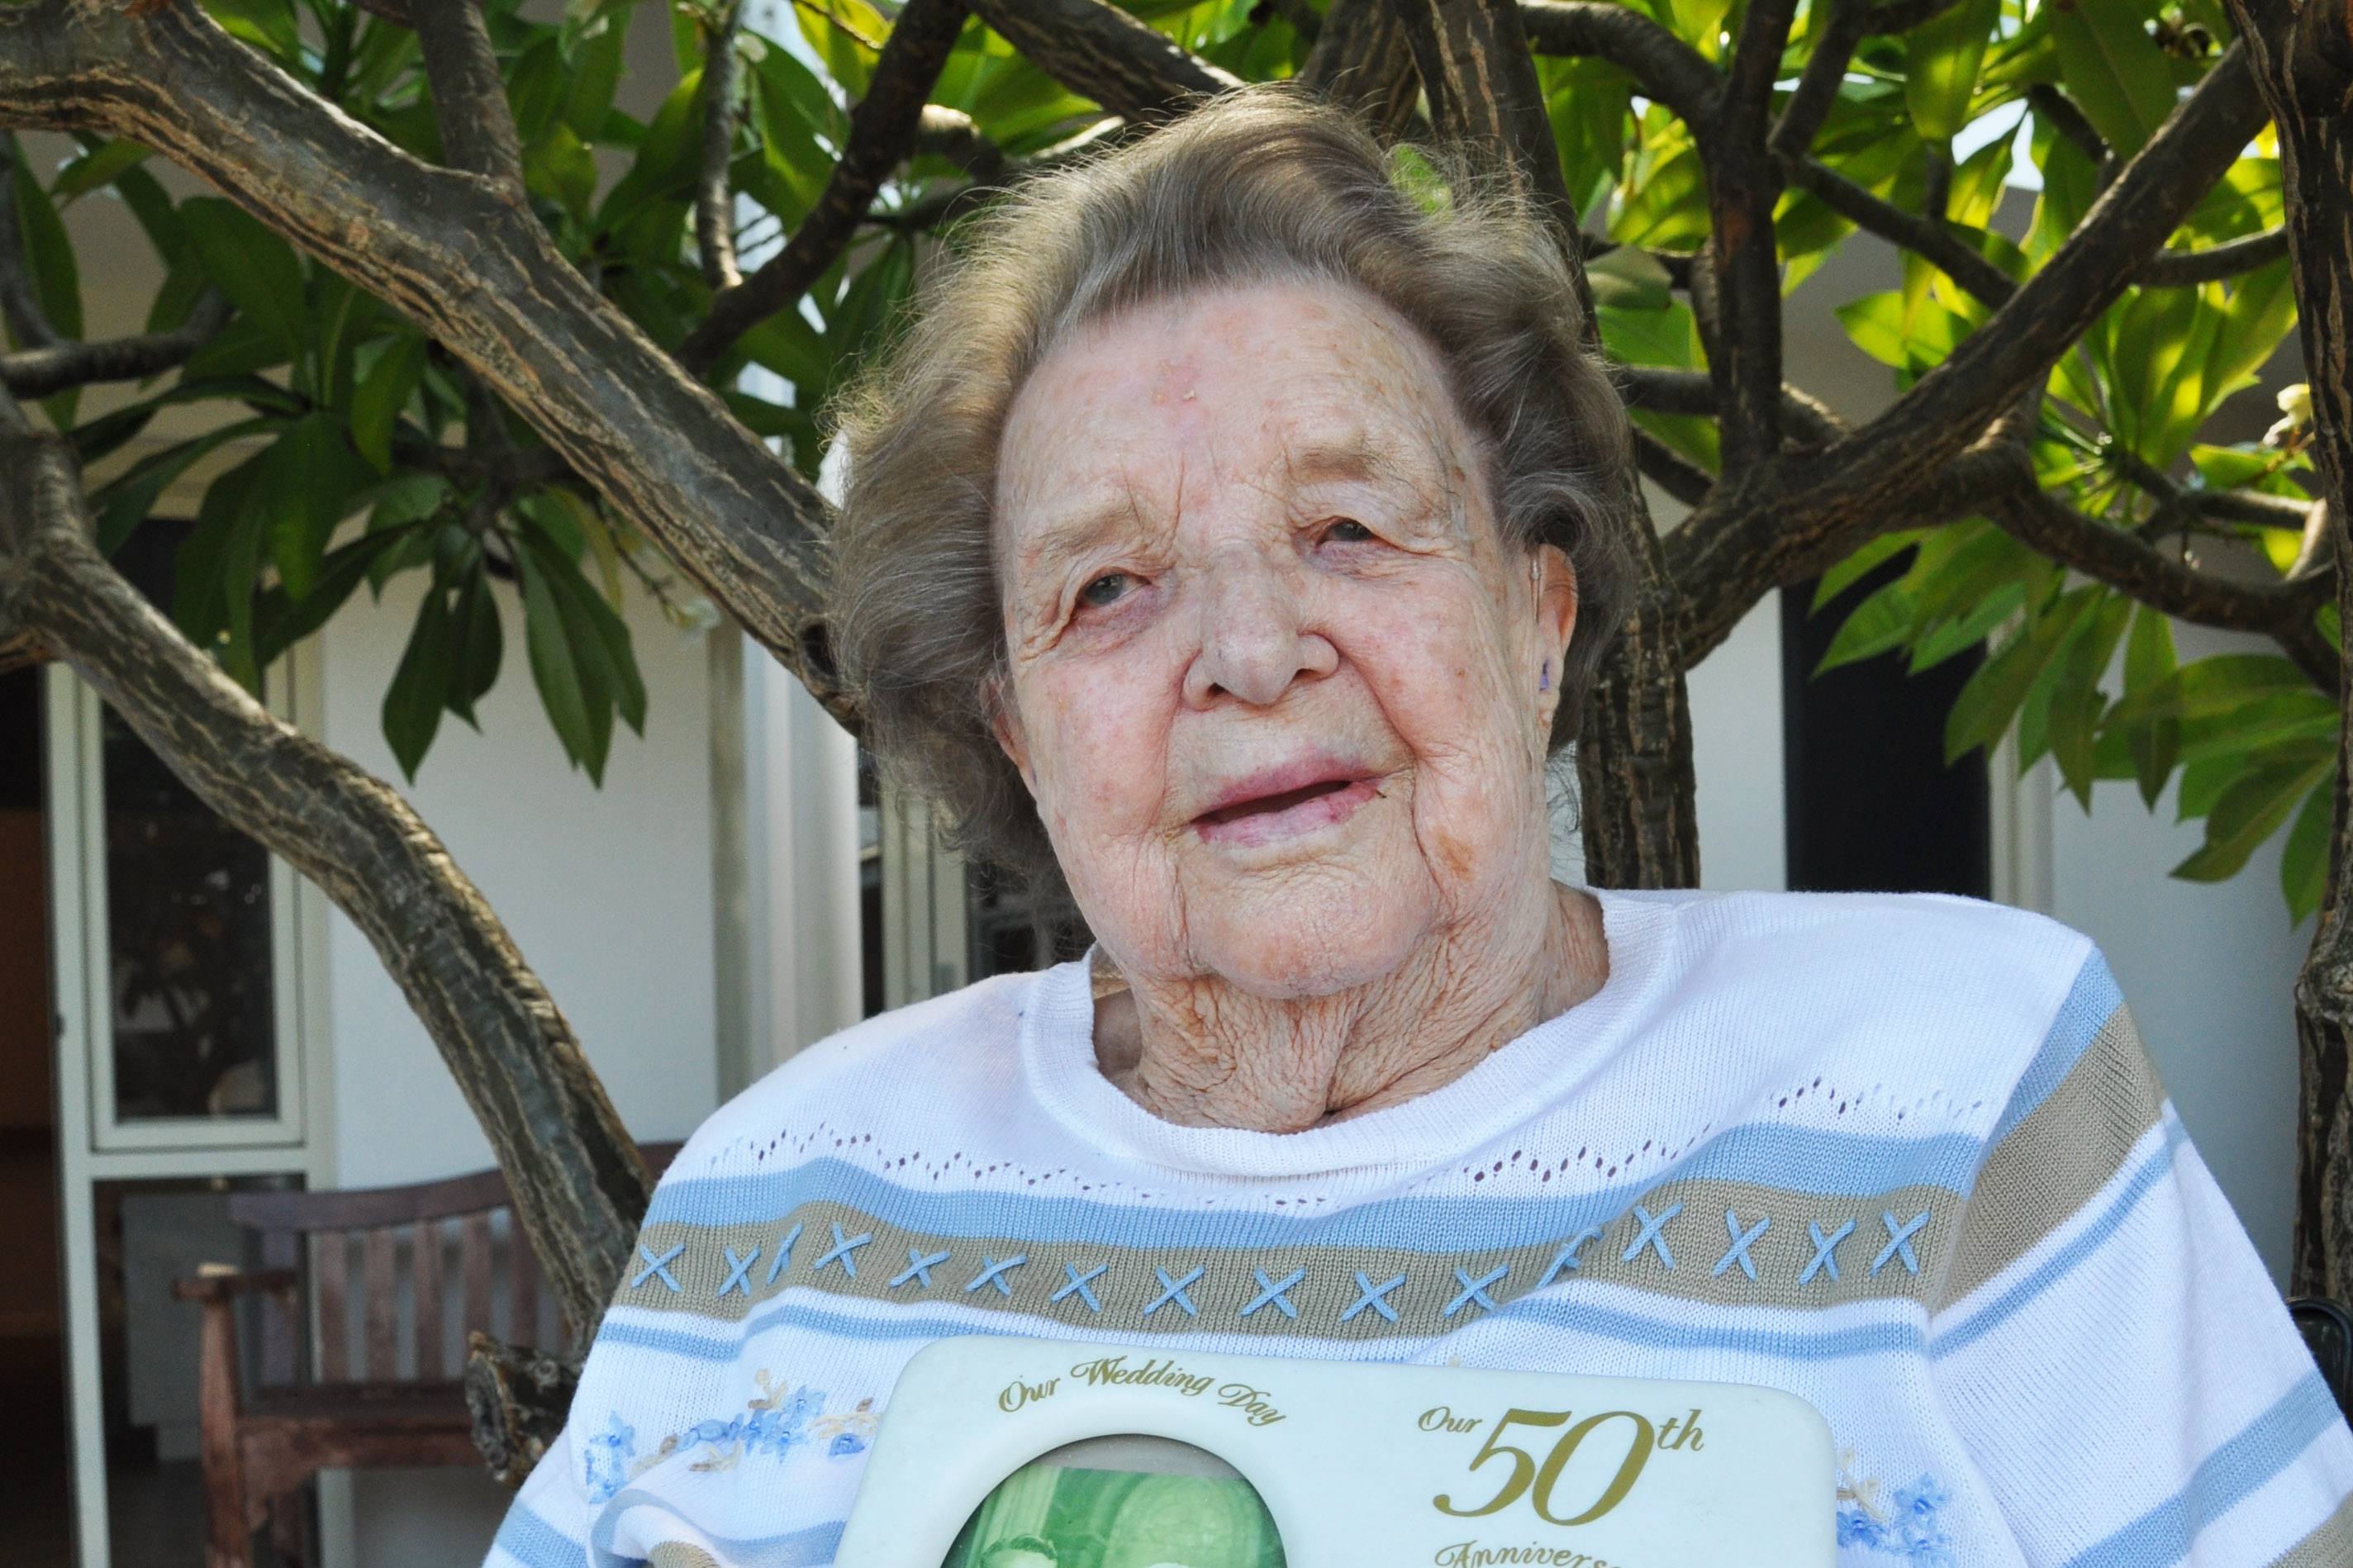 May Uphill, a 91-year-old Mercy Place Lathlain resident, reminisces her 50th wedding anniversary. Photo: Supplied.